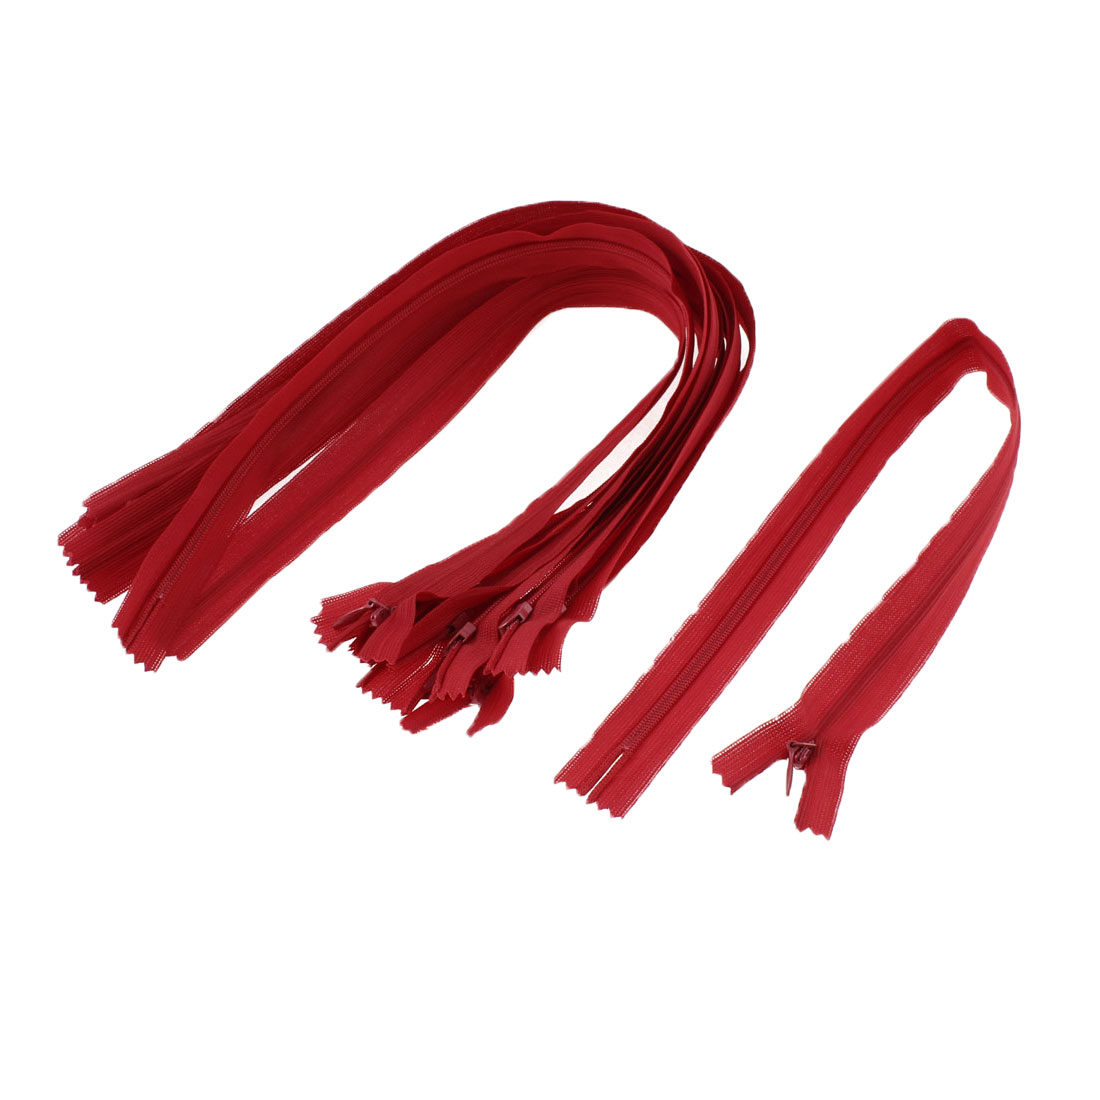 Dress Pants Closed End Nylon Zippers Tailor Sewing Craft Tool Red 40cm 10 Pcs